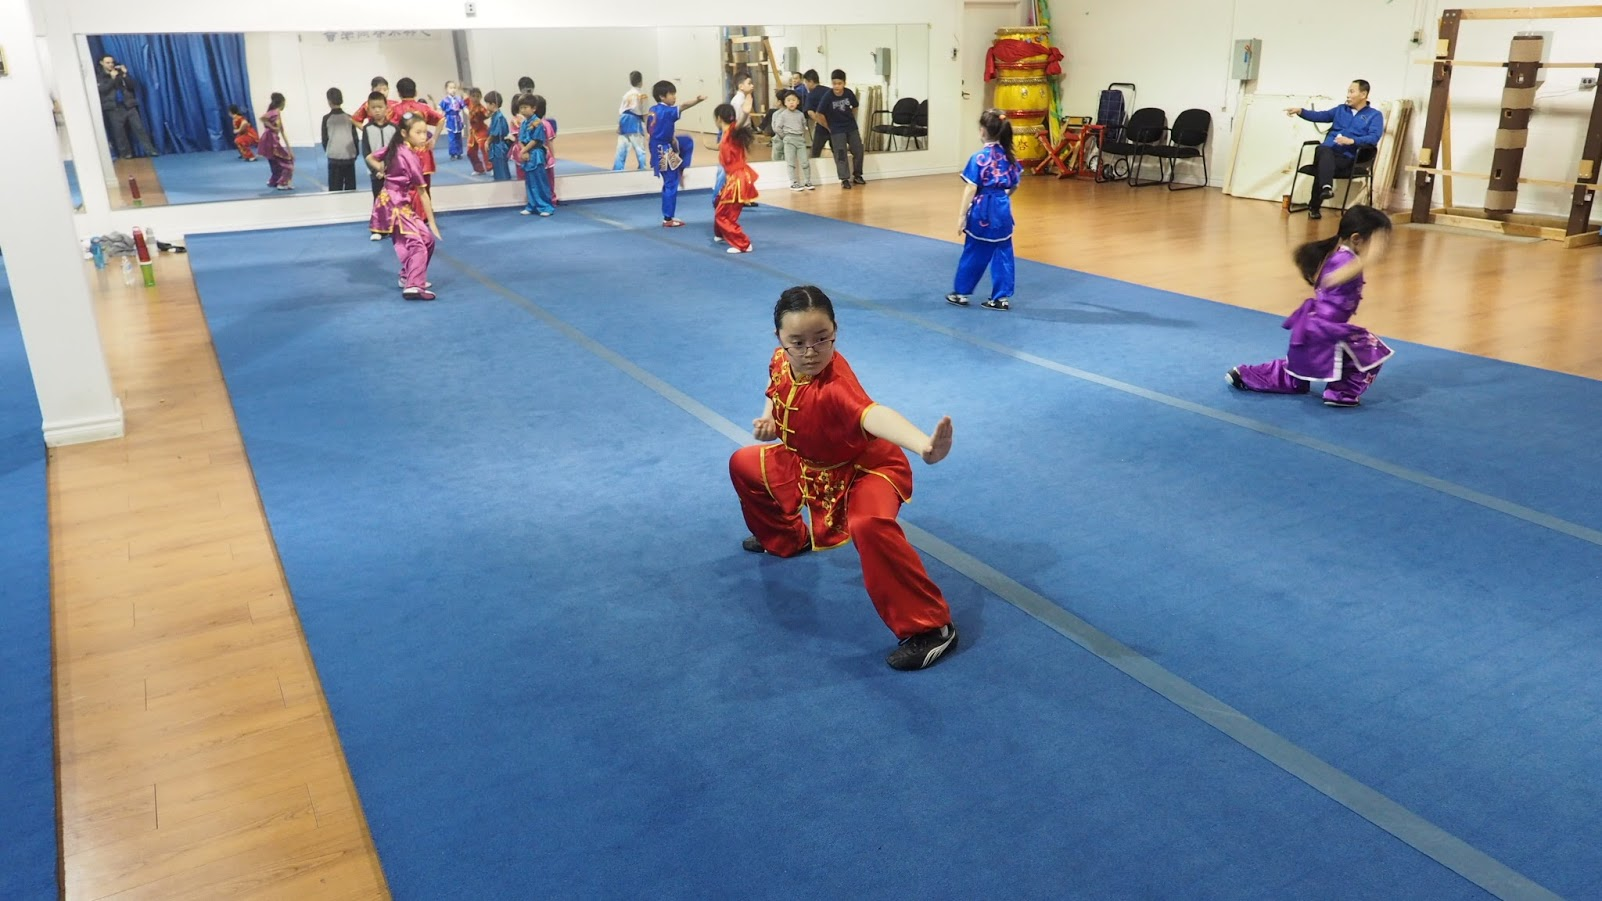 wayland-li-wushu-toronto-markham-march2017-training-camp-6.JPG